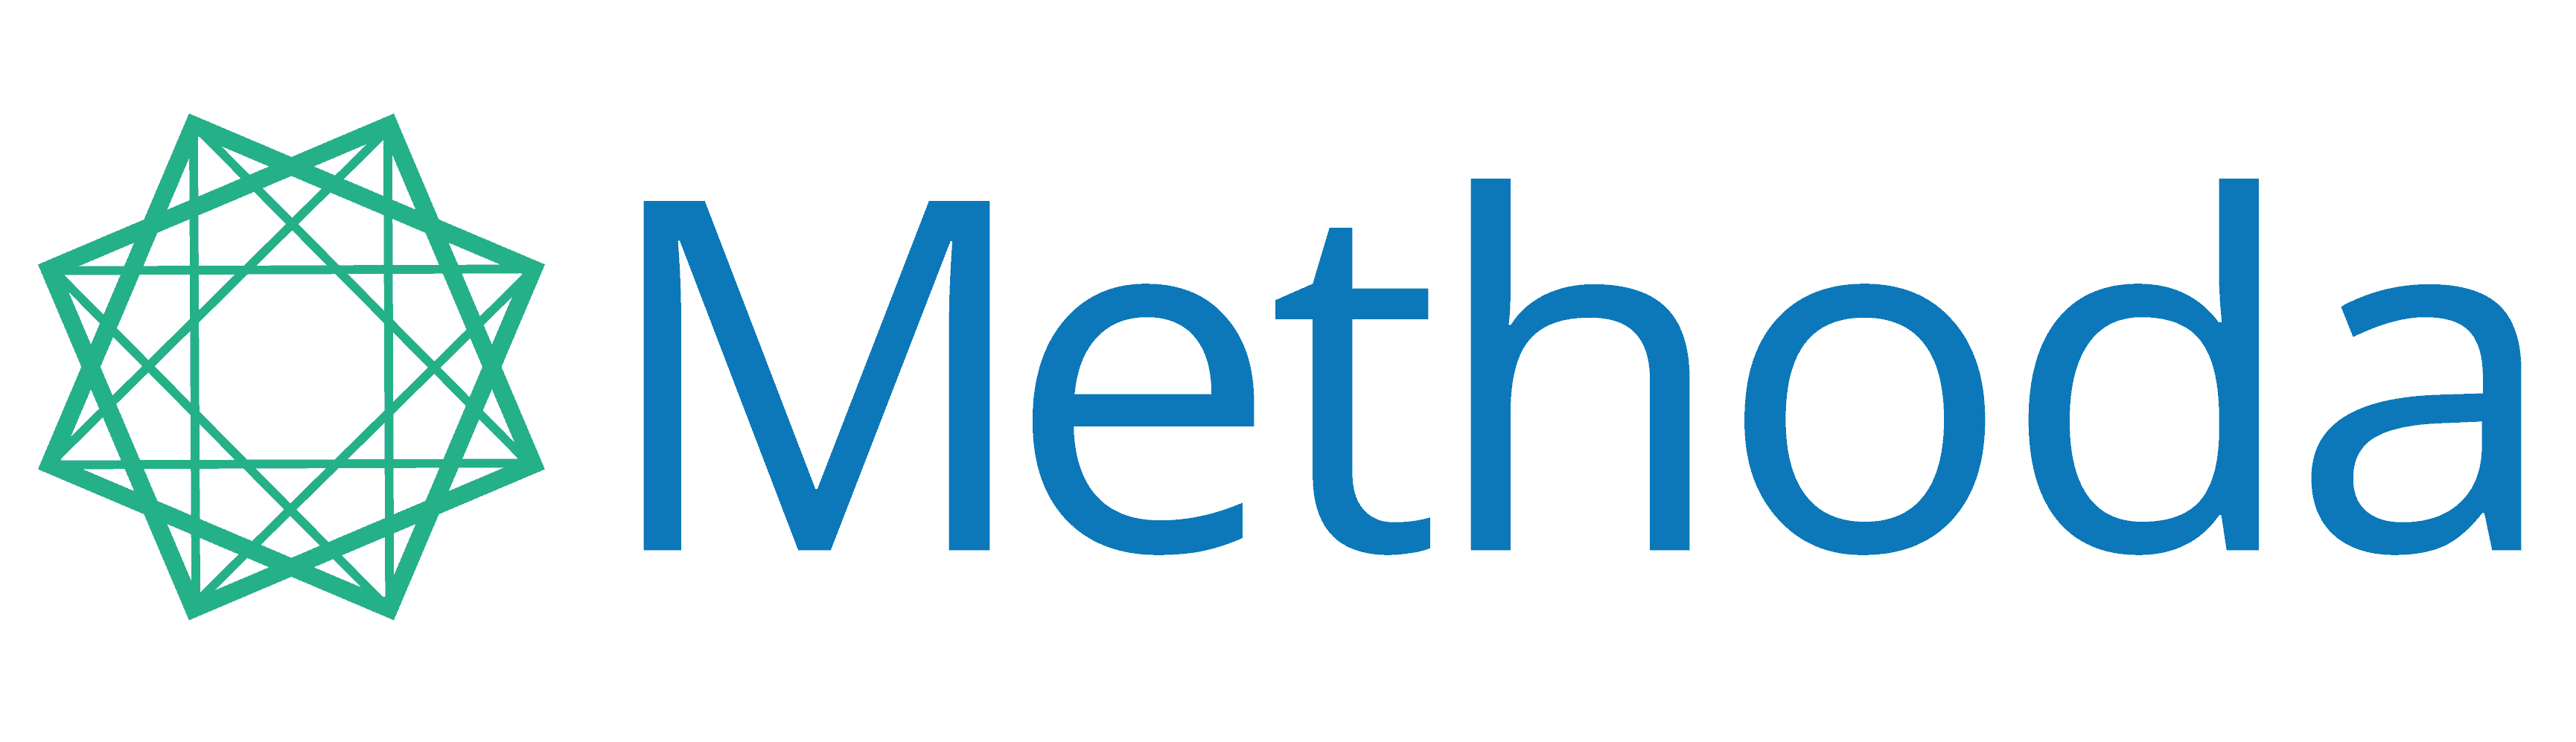 Methoda new logo